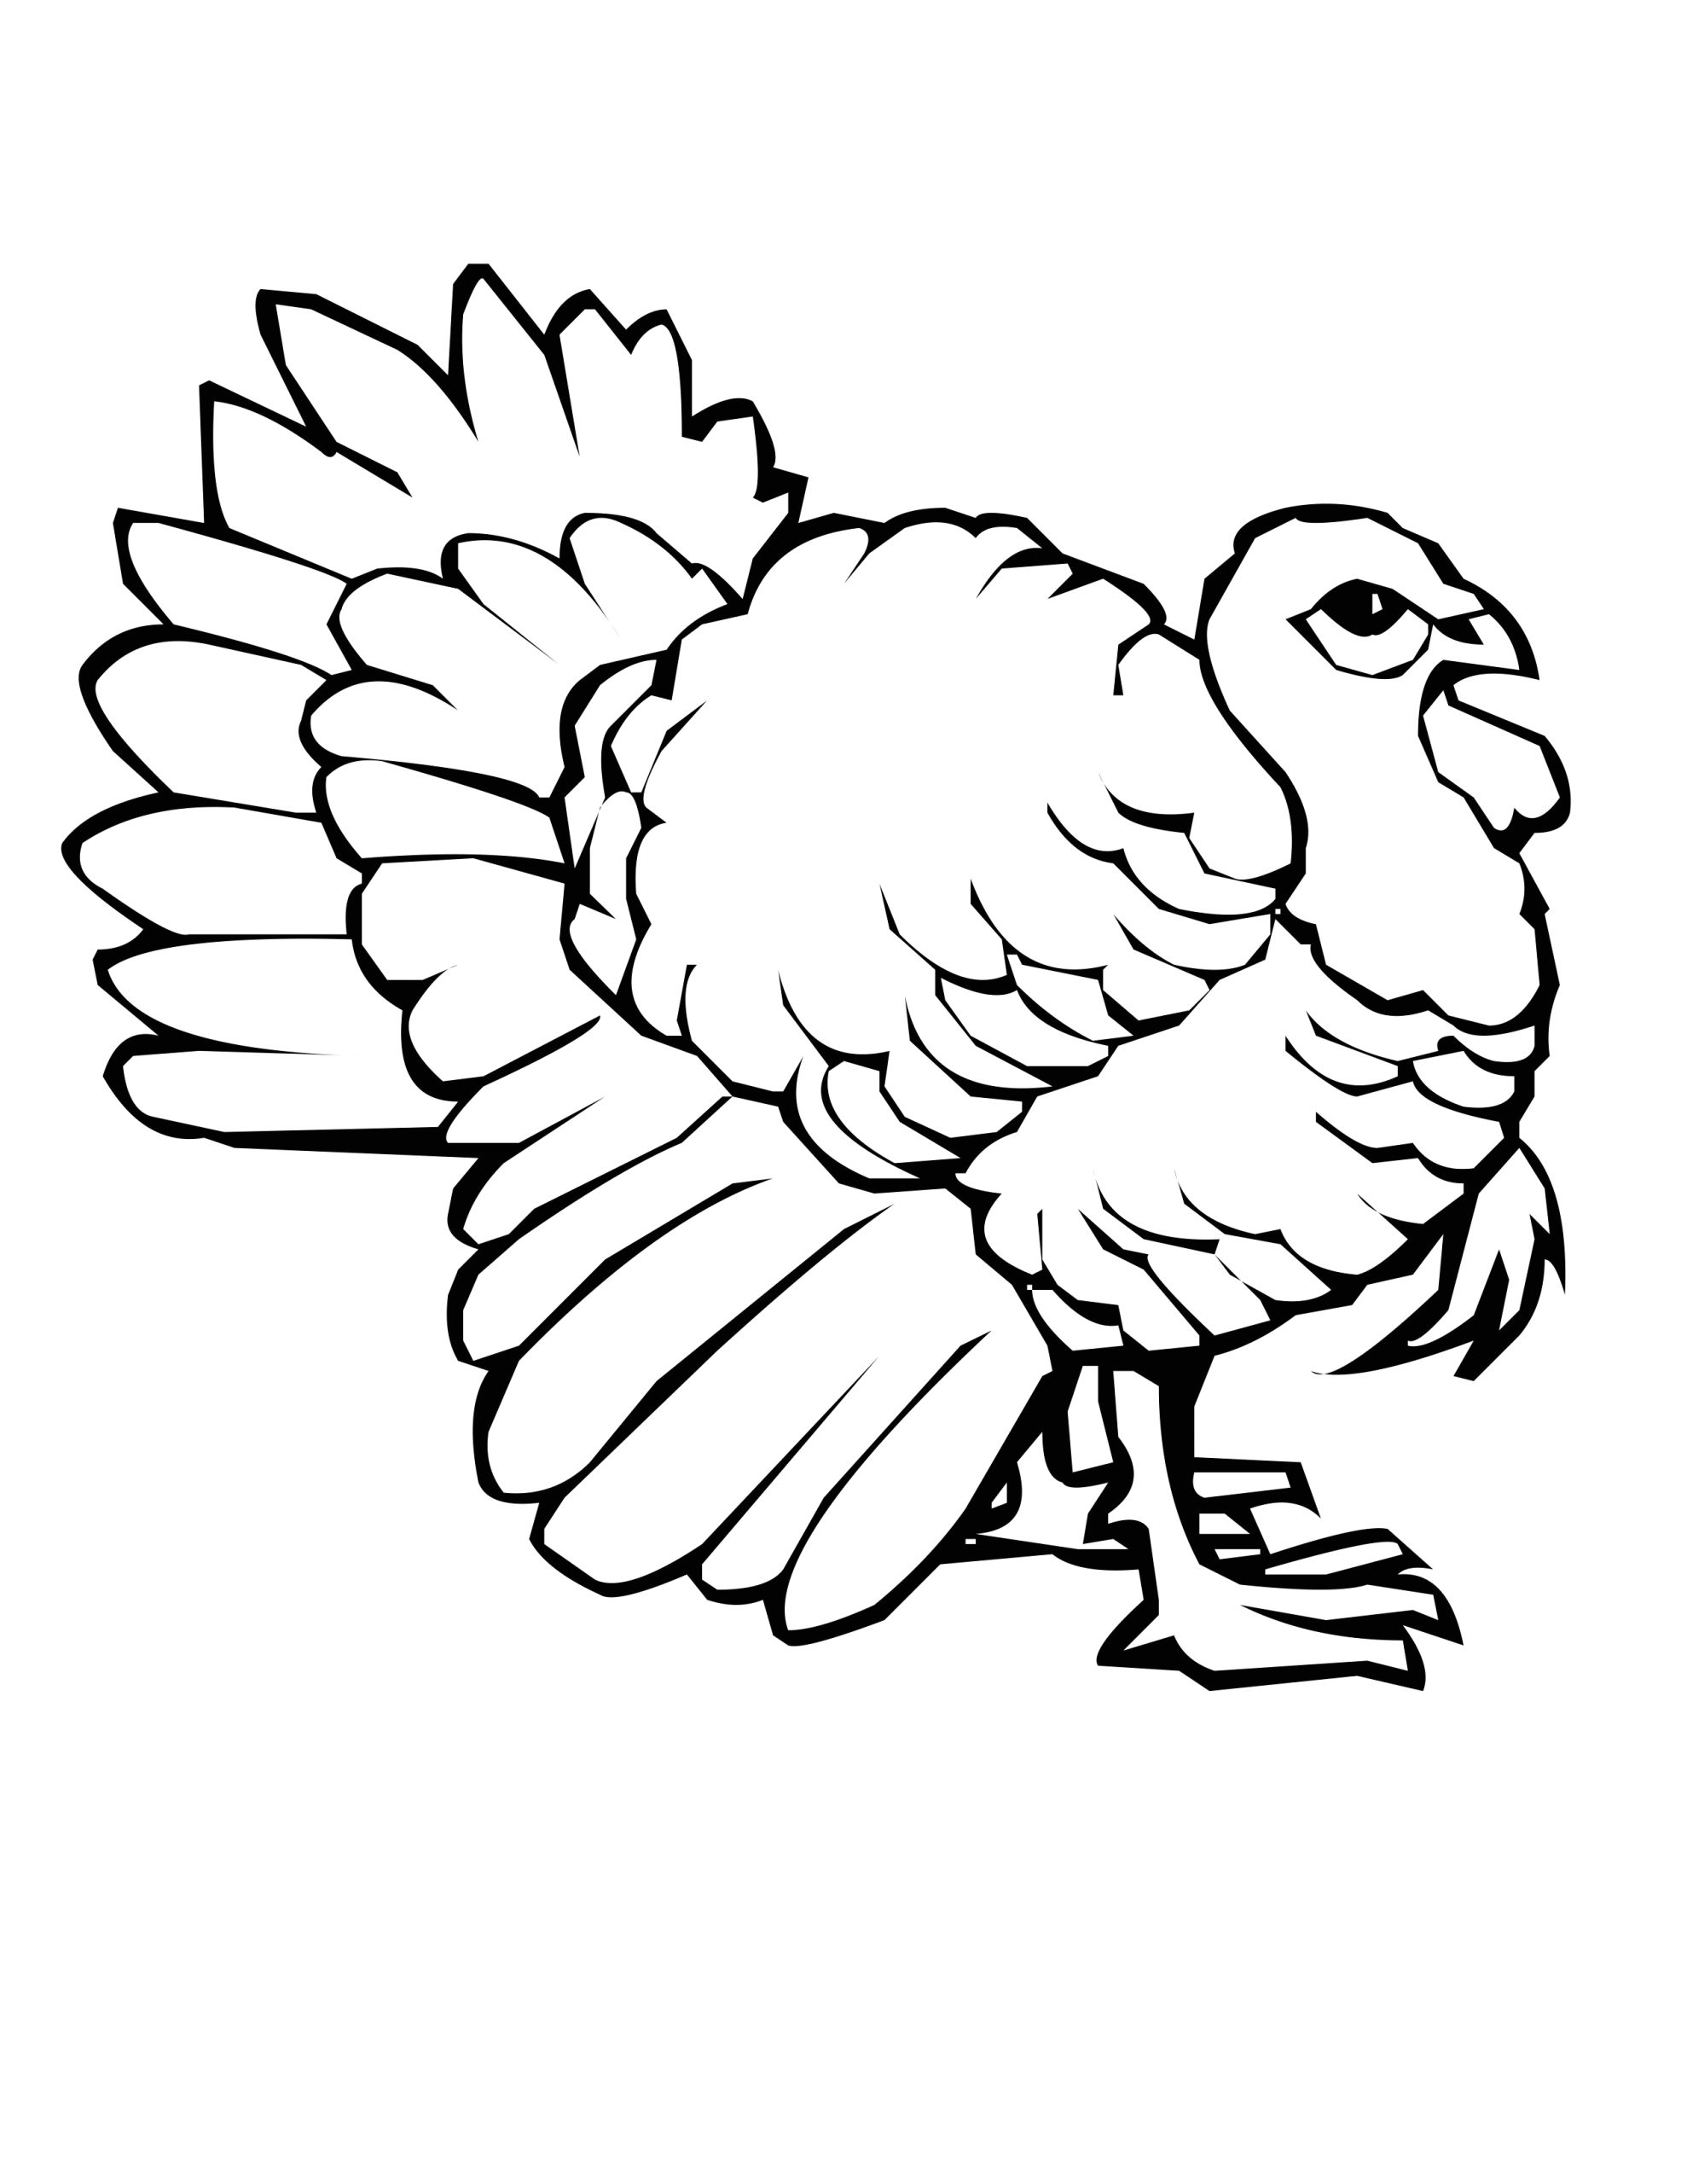 Free Printable Full Page Turkey Coloring Pages Free Printable Turkey Coloring Pages for Kids